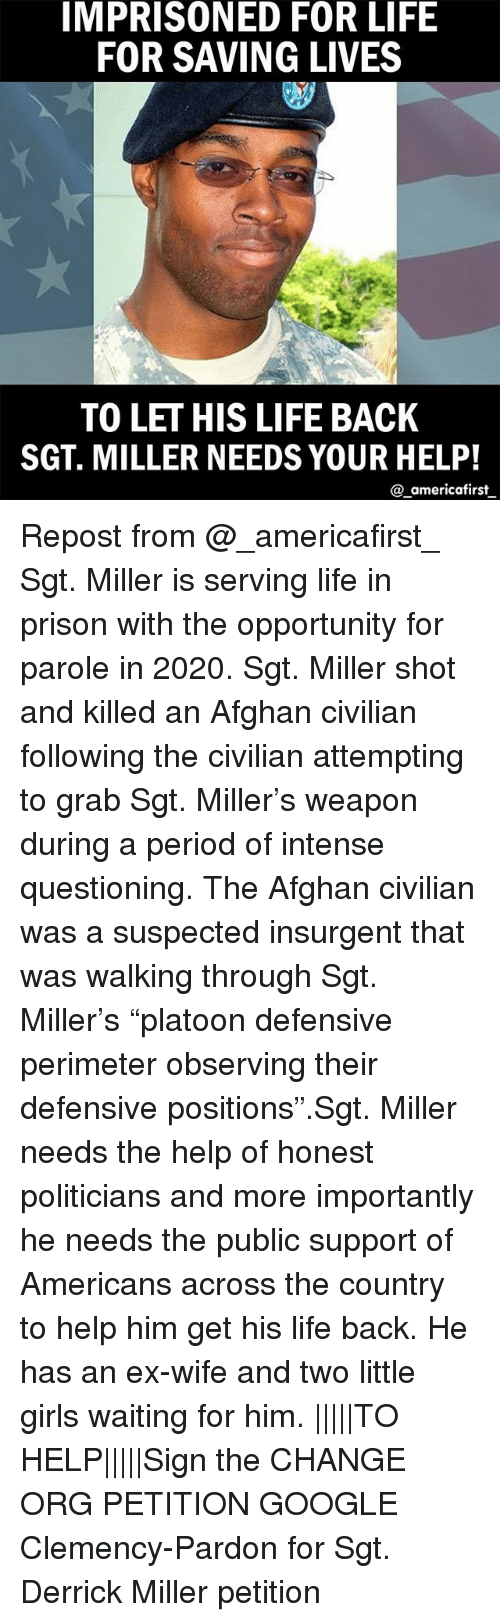 """perimeter: IMPRISONED FOR LIFE  FOR SAVING LIVES  TO LET HIS LIFE BACK  SGT. MILLER NEEDS YOUR HELP!  @ americafirst Repost from @_americafirst_ Sgt. Miller is serving life in prison with the opportunity for parole in 2020. Sgt. Miller shot and killed an Afghan civilian following the civilian attempting to grab Sgt. Miller's weapon during a period of intense questioning. The Afghan civilian was a suspected insurgent that was walking through Sgt. Miller's """"platoon defensive perimeter observing their defensive positions"""".Sgt. Miller needs the help of honest politicians and more importantly he needs the public support of Americans across the country to help him get his life back. He has an ex-wife and two little girls waiting for him. 